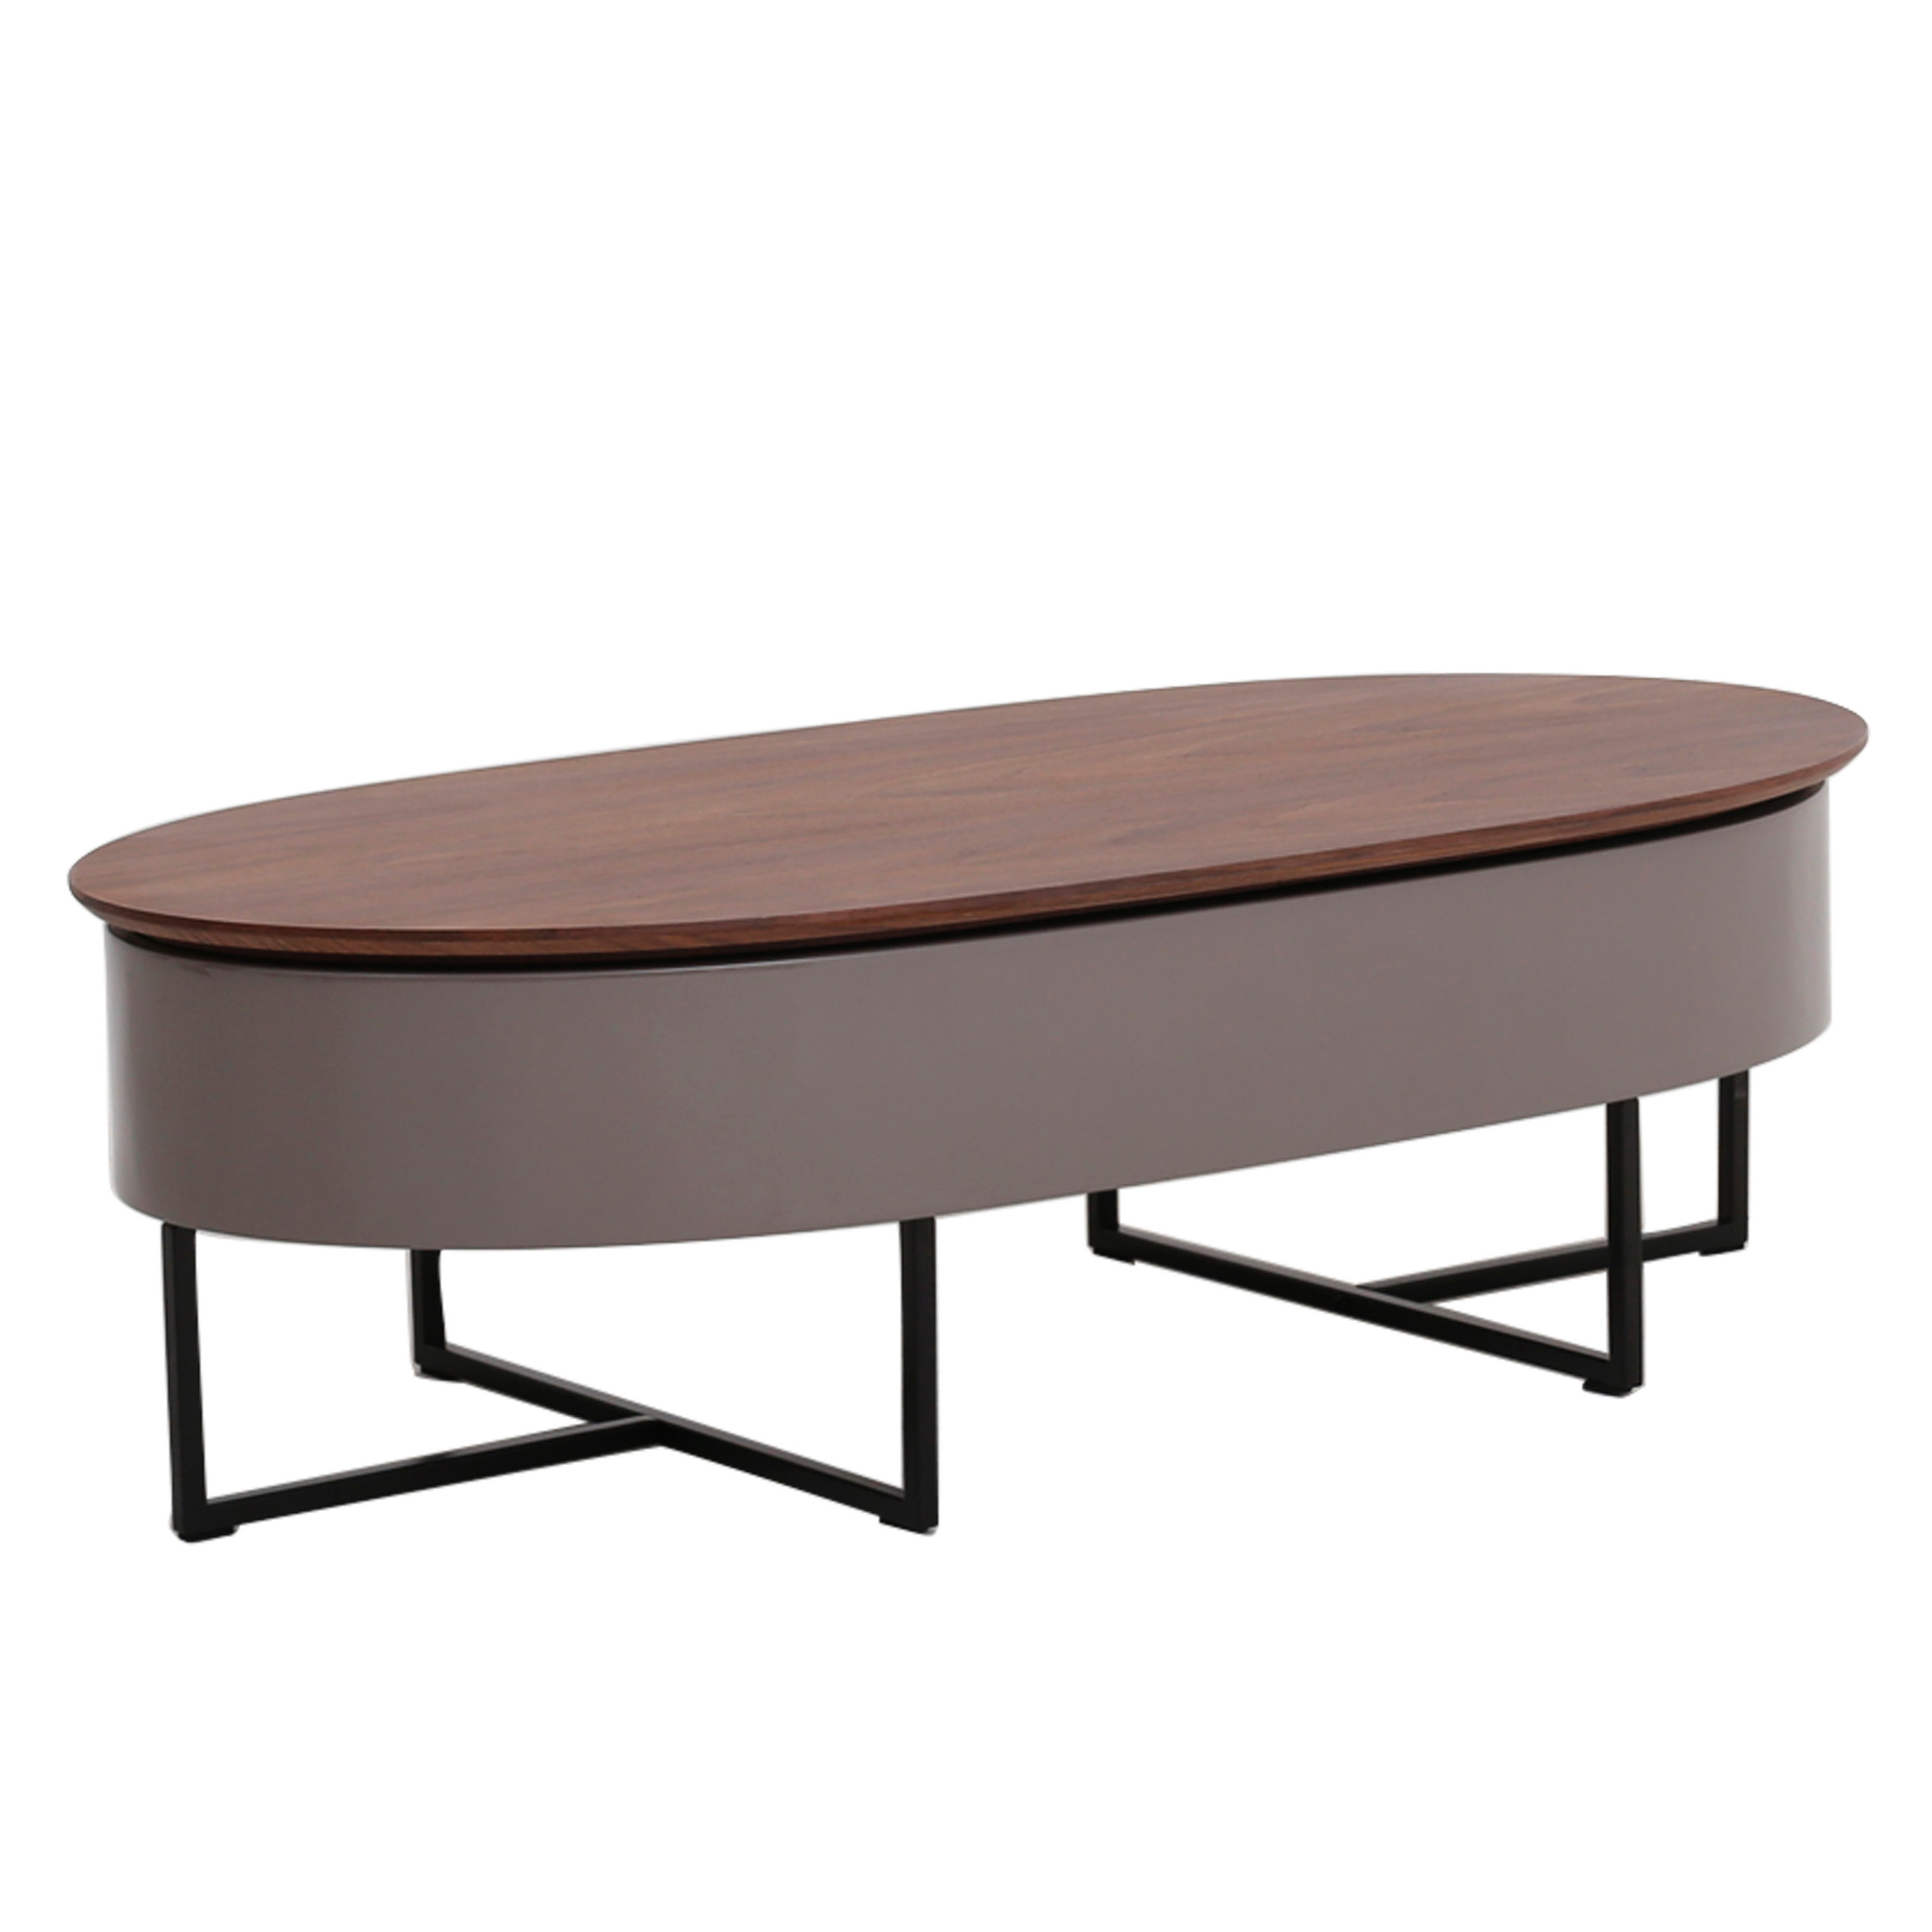 Oval Storage Coffee Table Xl Large Oval Storage Ottoman Coffee Table Faux Leather Storage